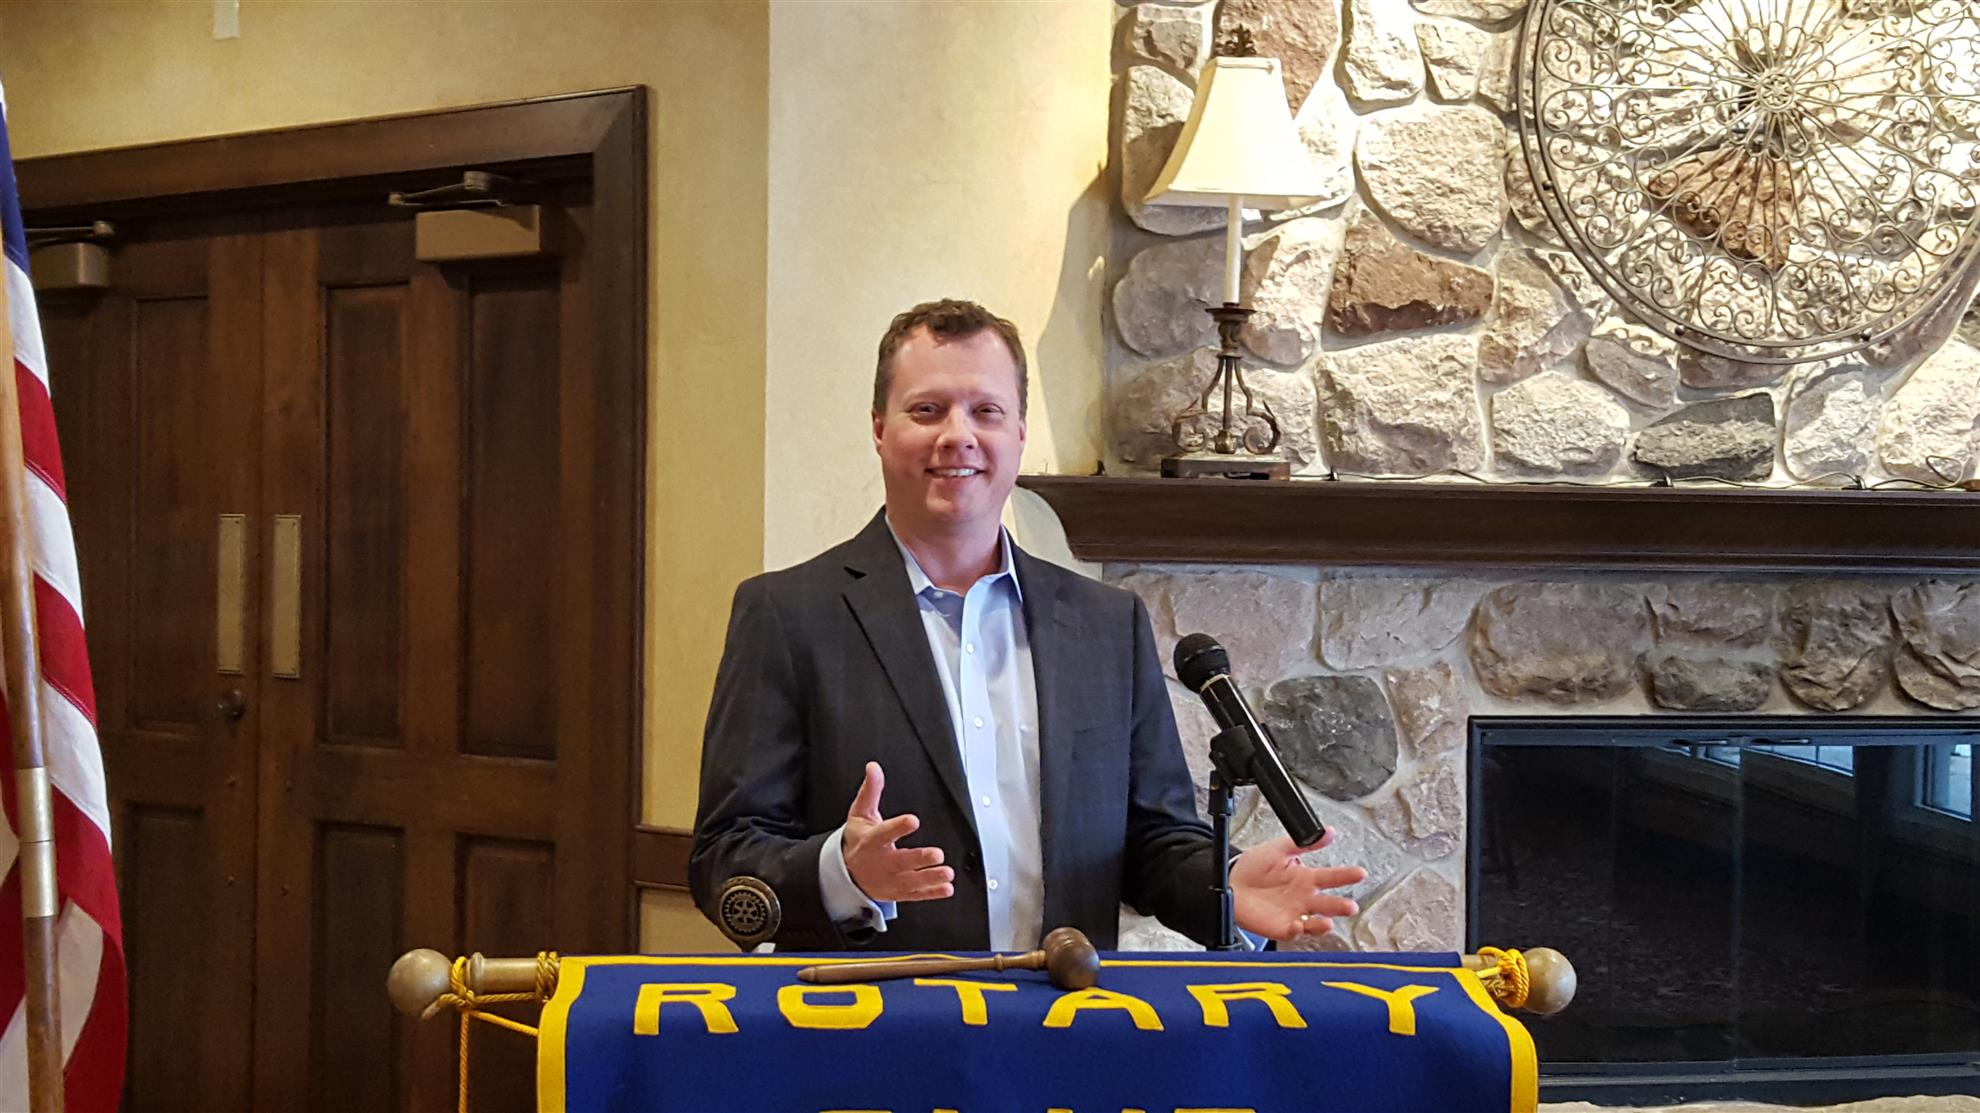 Farewell and Welcome! | Rotary Club of Thiensville-Mequon